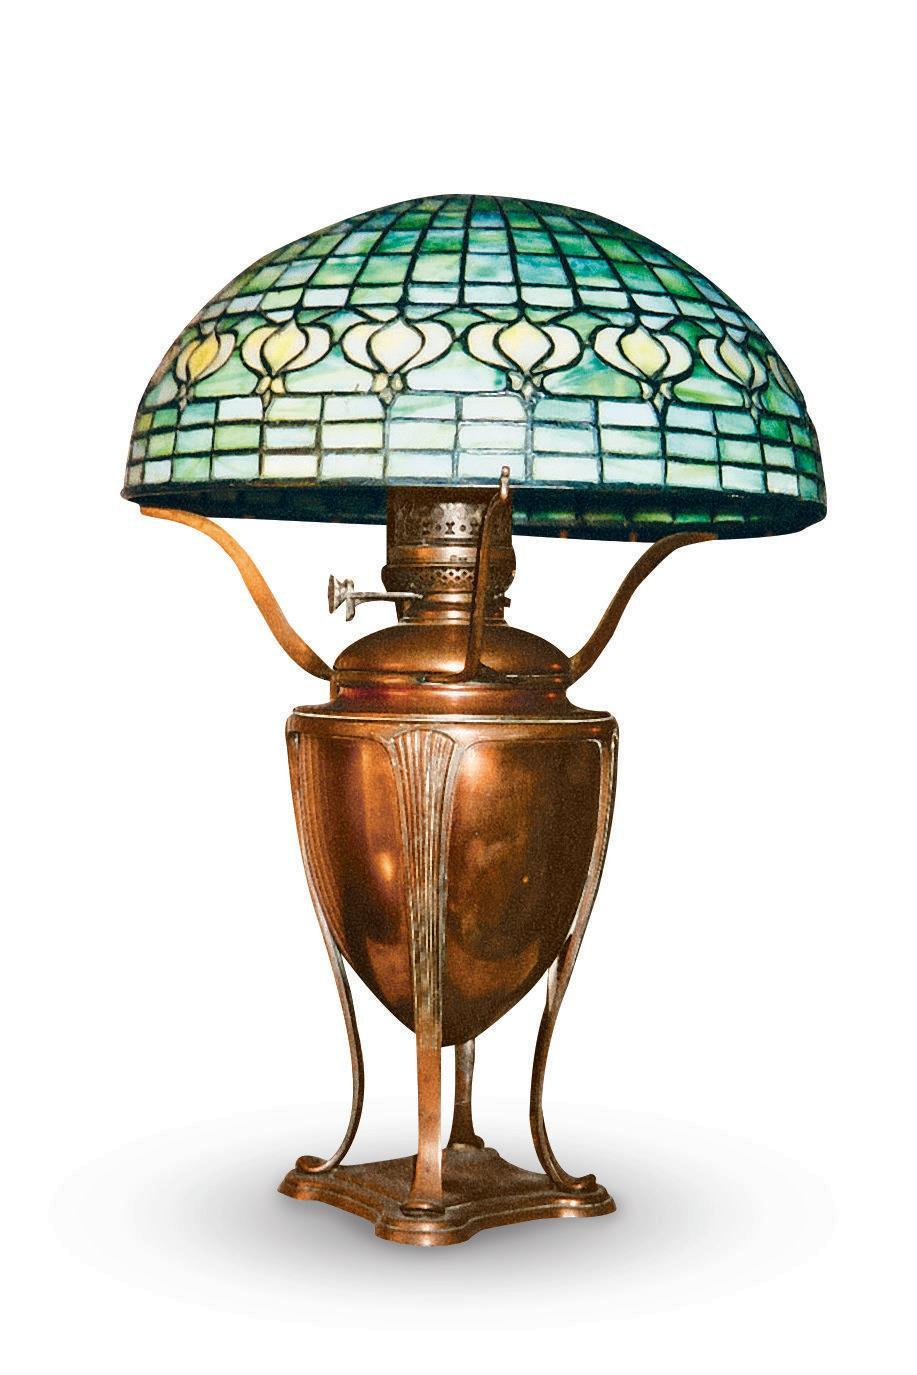 """<p><strong>What it was worth (2004):</strong> $12,000</p><p><strong>What it's worth now:</strong> $12,000</p><p>Compared to current <a href=""""https://www.tiffanylamps.com/tiffany-table-lamps.html"""" rel=""""nofollow noopener"""" target=""""_blank"""" data-ylk=""""slk:Tiffany Table designs"""" class=""""link rapid-noclick-resp"""">Tiffany Table designs</a>—which are sold for a few hundred dollars—<a href=""""https://www.ebay.com/itm/Tiffany-Style-Table-Lamp-Double-Lit-Desk-Lamp-Stained-Glass-Home-Decor-Lighting/253135419951"""" rel=""""nofollow noopener"""" target=""""_blank"""" data-ylk=""""slk:this version"""" class=""""link rapid-noclick-resp"""">this version</a> is quite a bit pricier.</p>"""